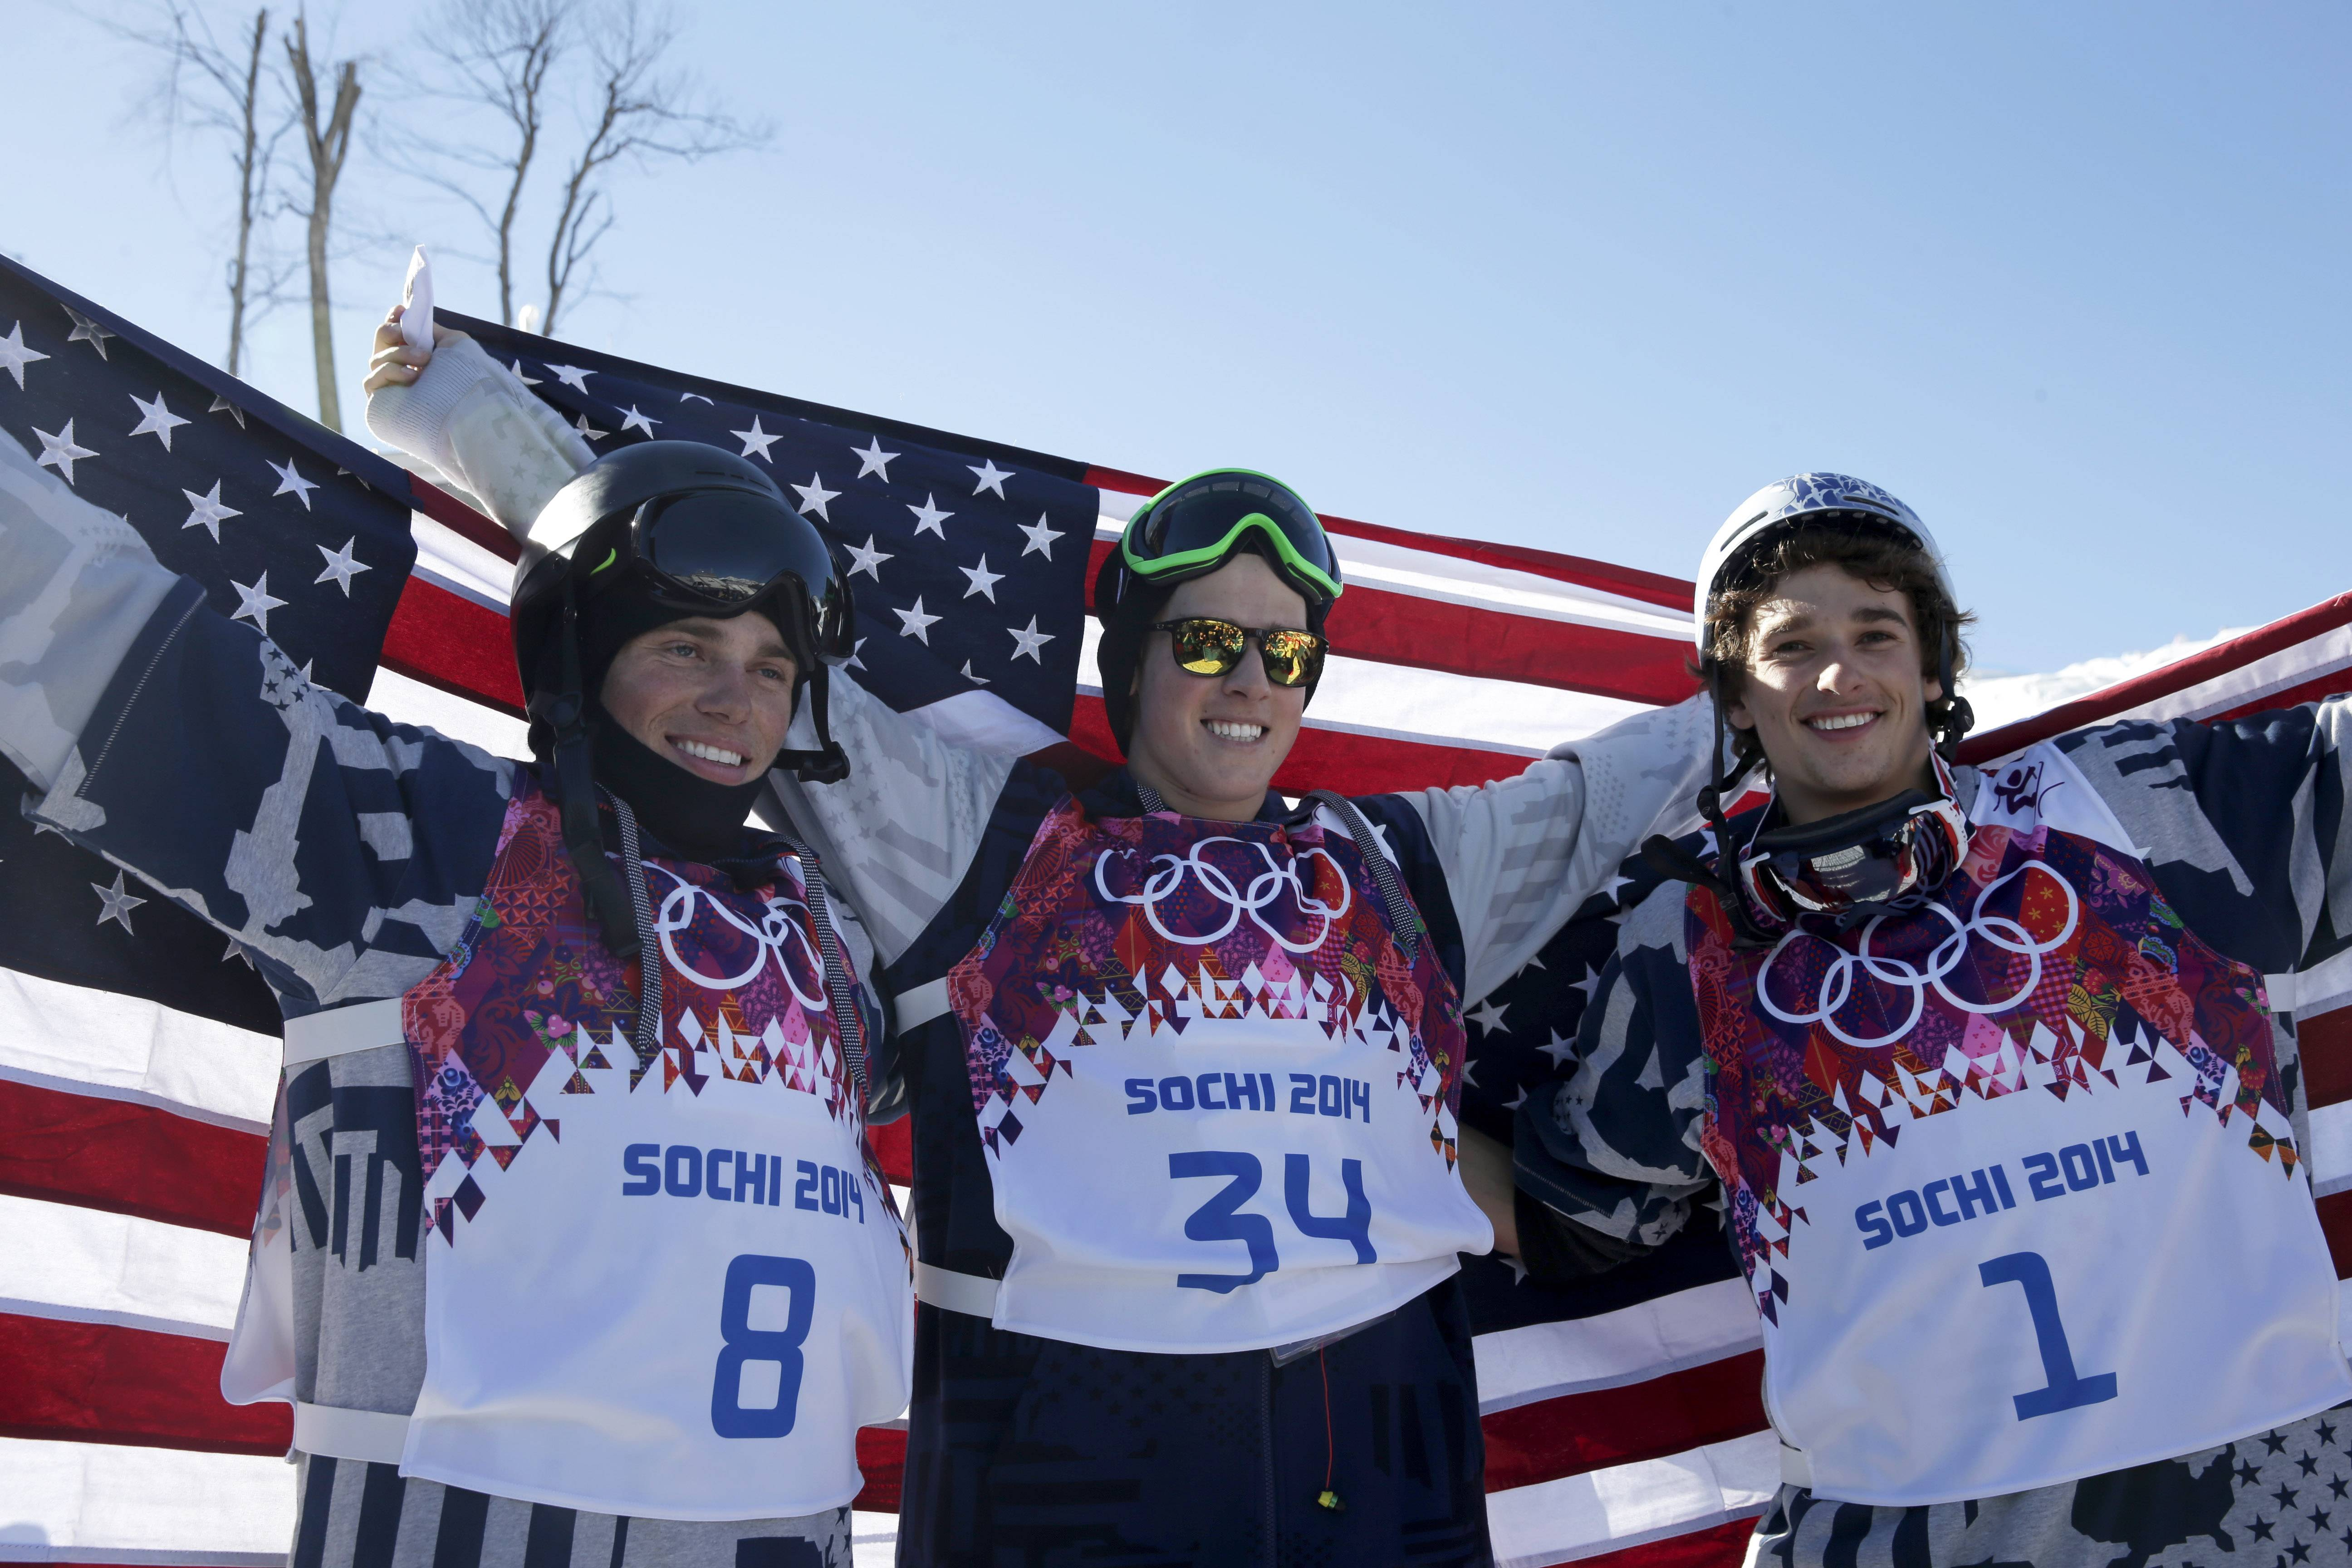 Men's freestyle ski slopestyle medalists from the United States Gus Kenworthy, left, silver, Joss Christensen, center, gold, and Nicholas Goepper, bronze, right, pose for photographers Thursday at the Rosa Khutor Extreme Park at the 2014 Winter Olympics in Krasnaya Polyana, Russia.